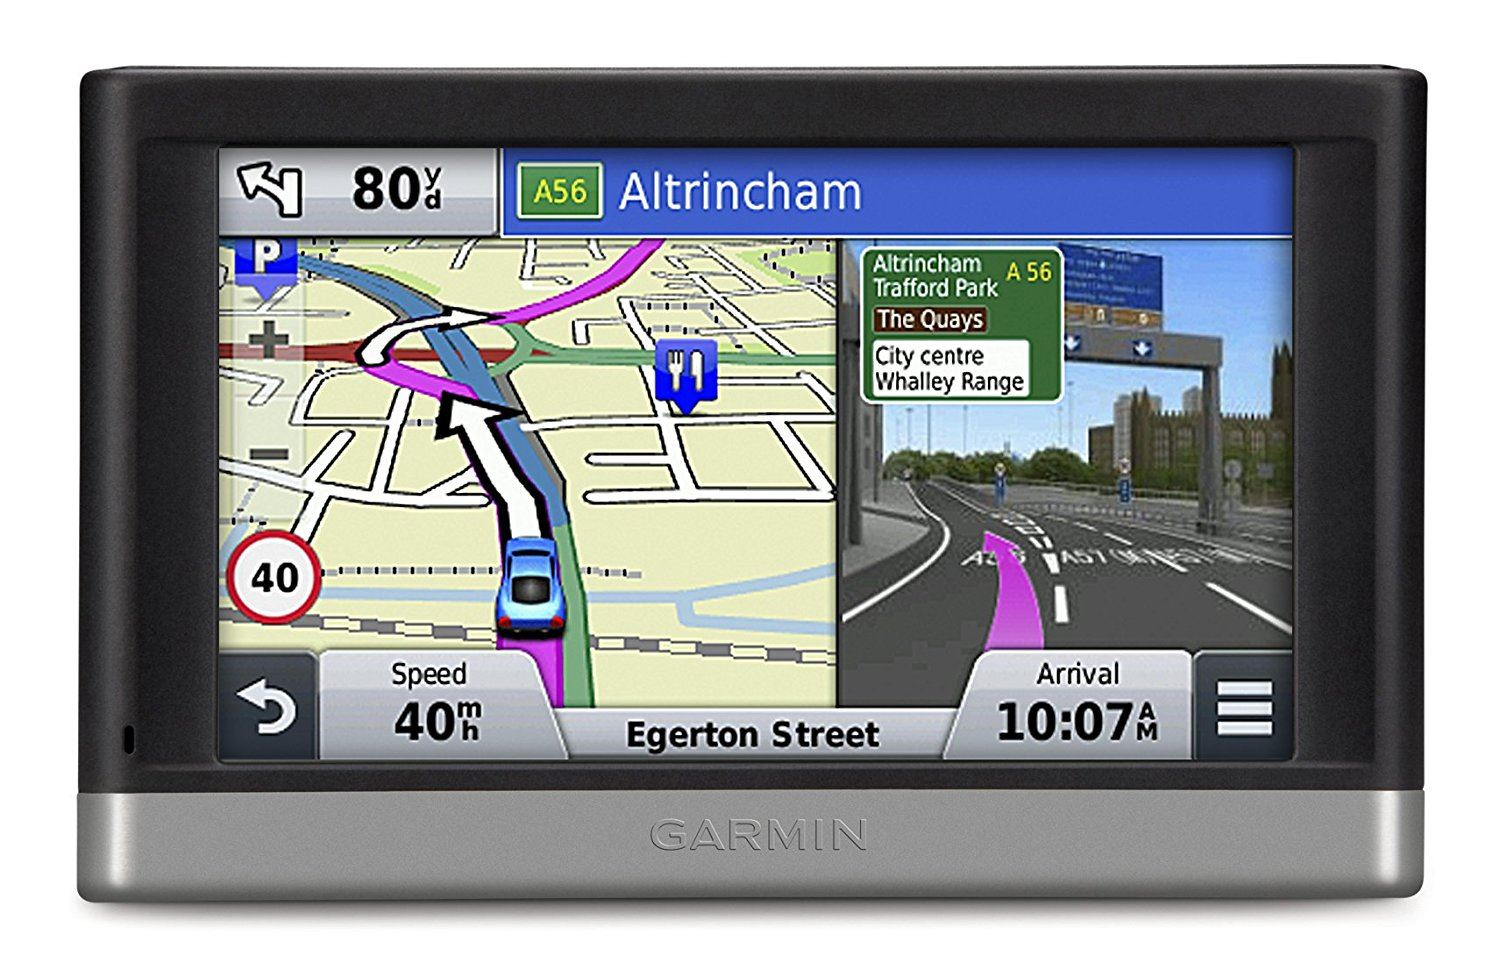 garmin nuvi 2548 lmt d 5 gps sat nav uk w europe lifetime maps traffic 753759999681 ebay. Black Bedroom Furniture Sets. Home Design Ideas